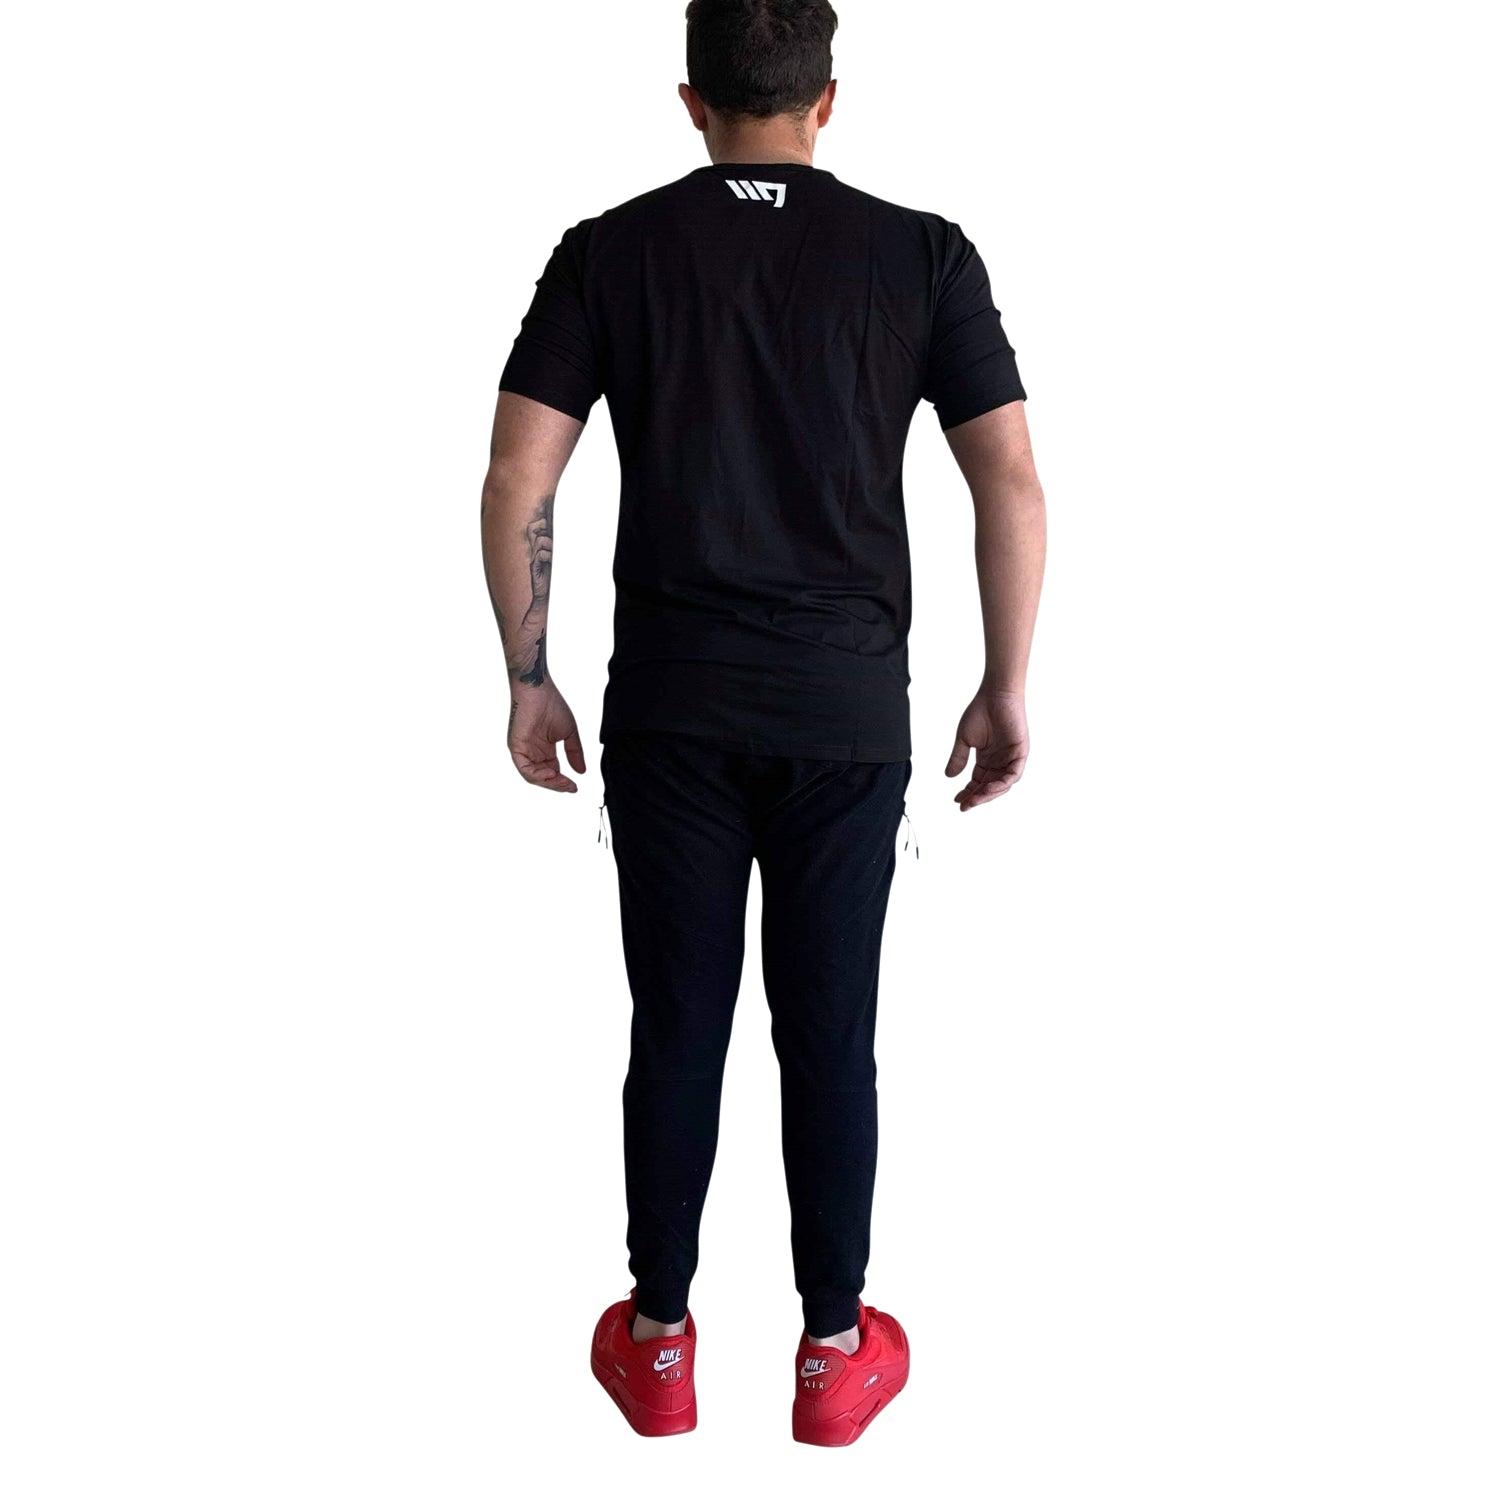 Ultra Trainer Tee - Black